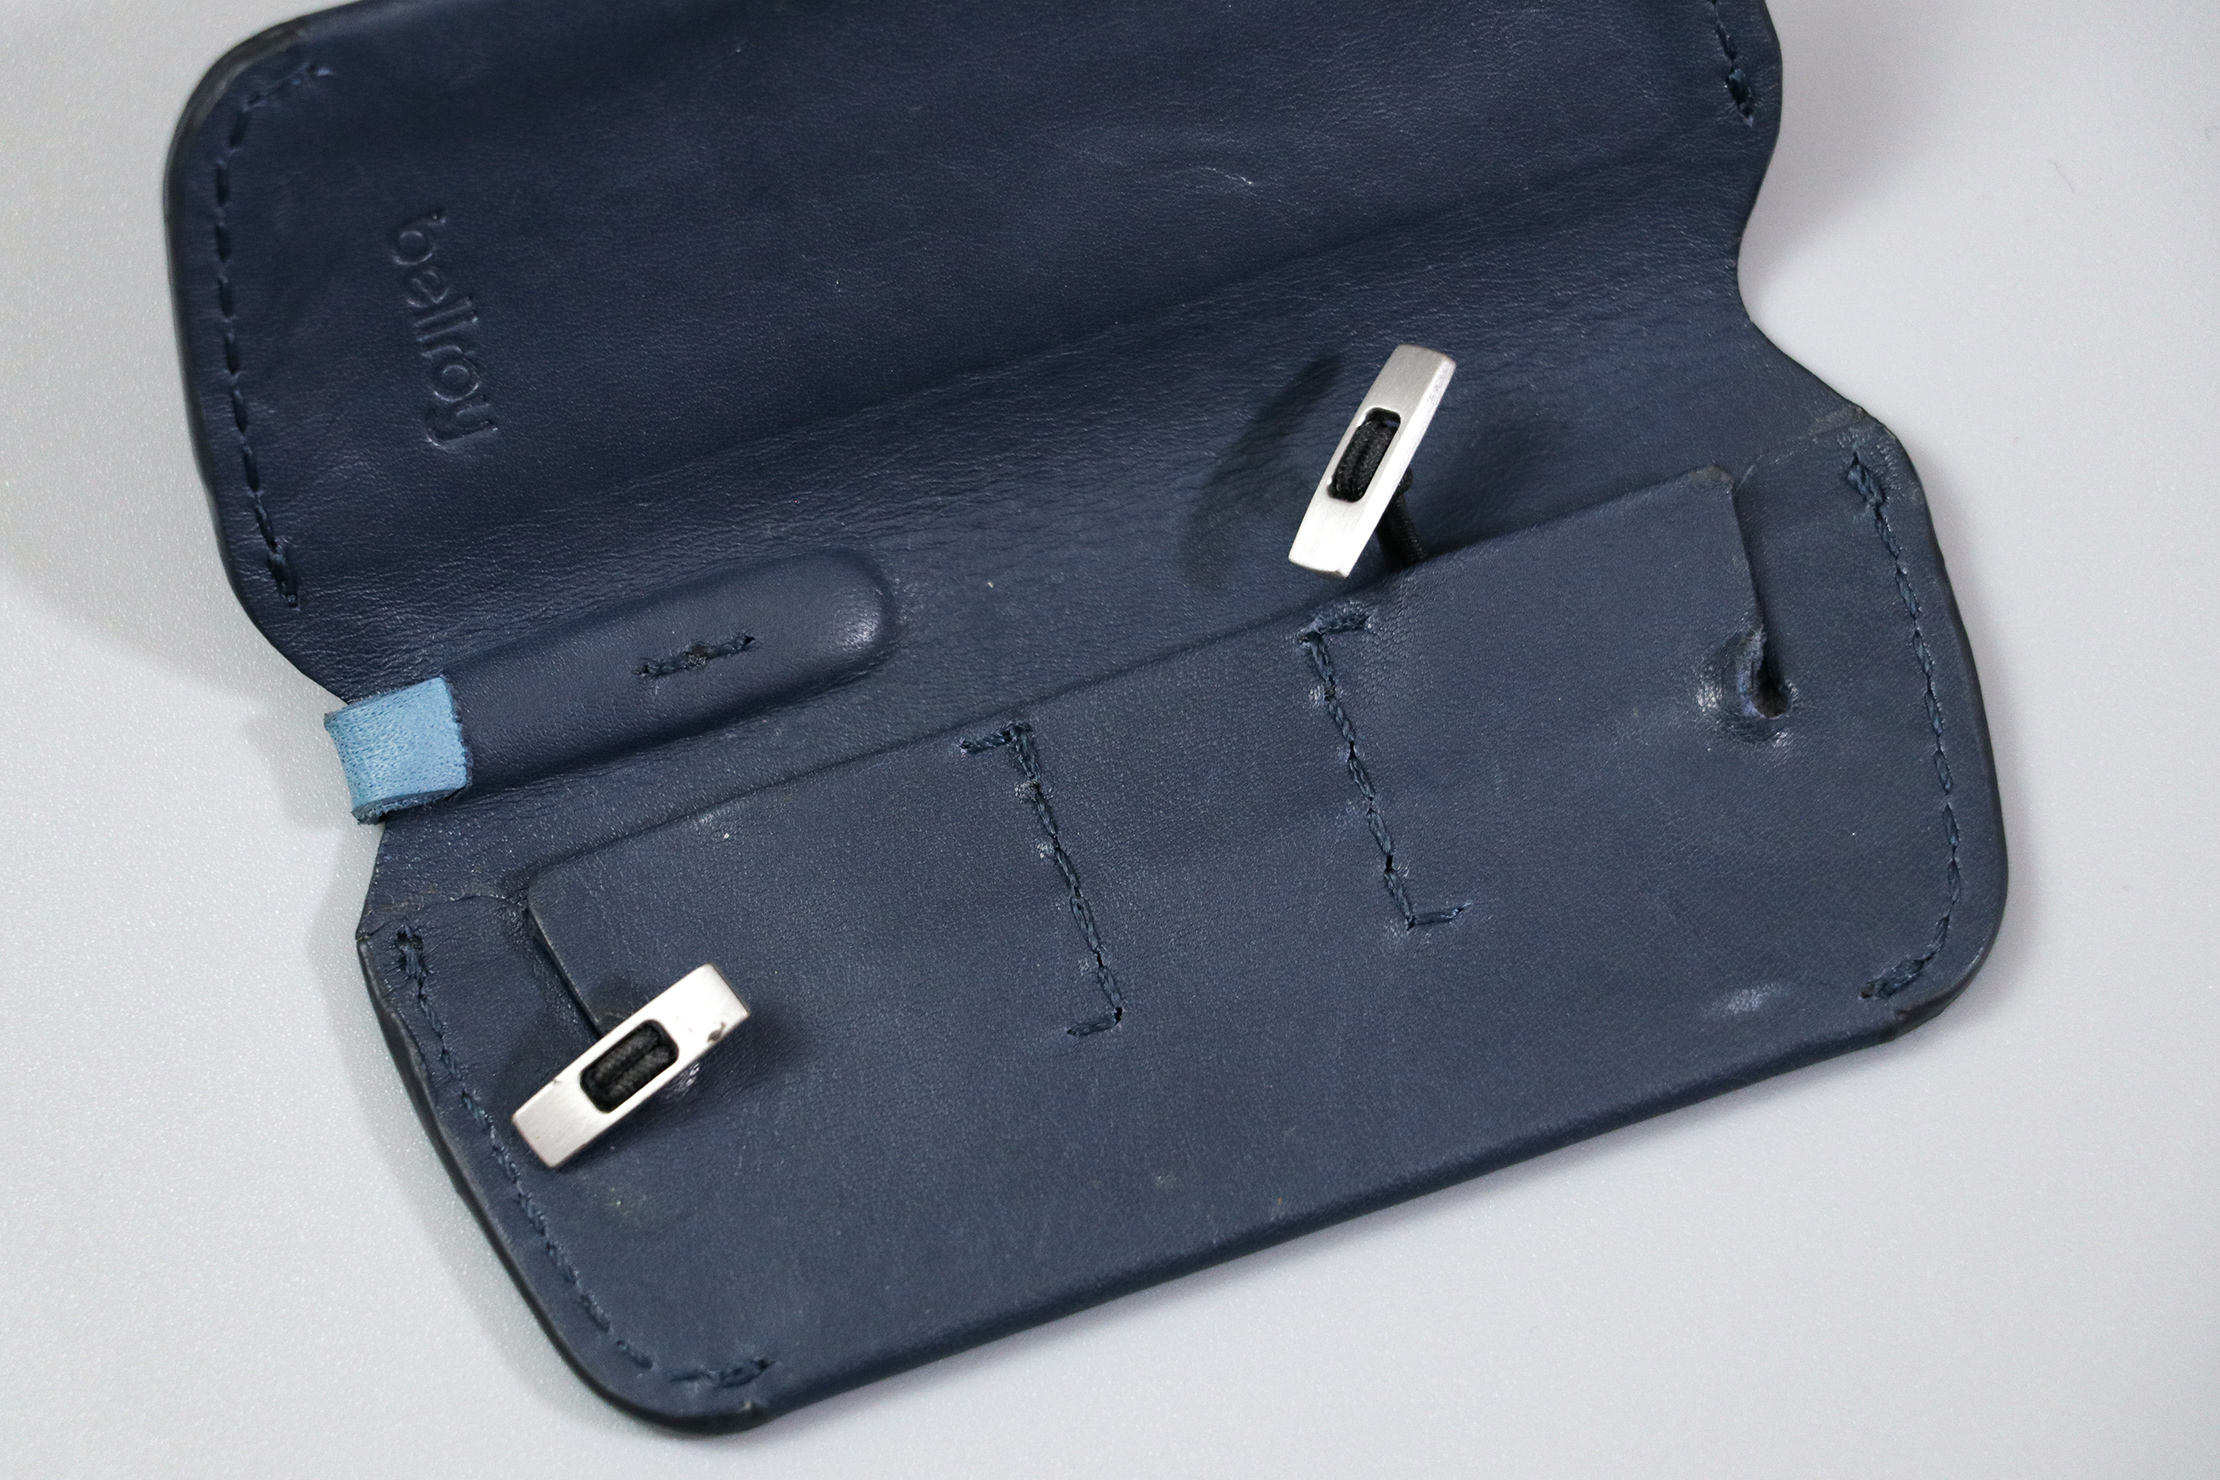 Bellroy Key Cover Plus Elasticated Key Attachment Points